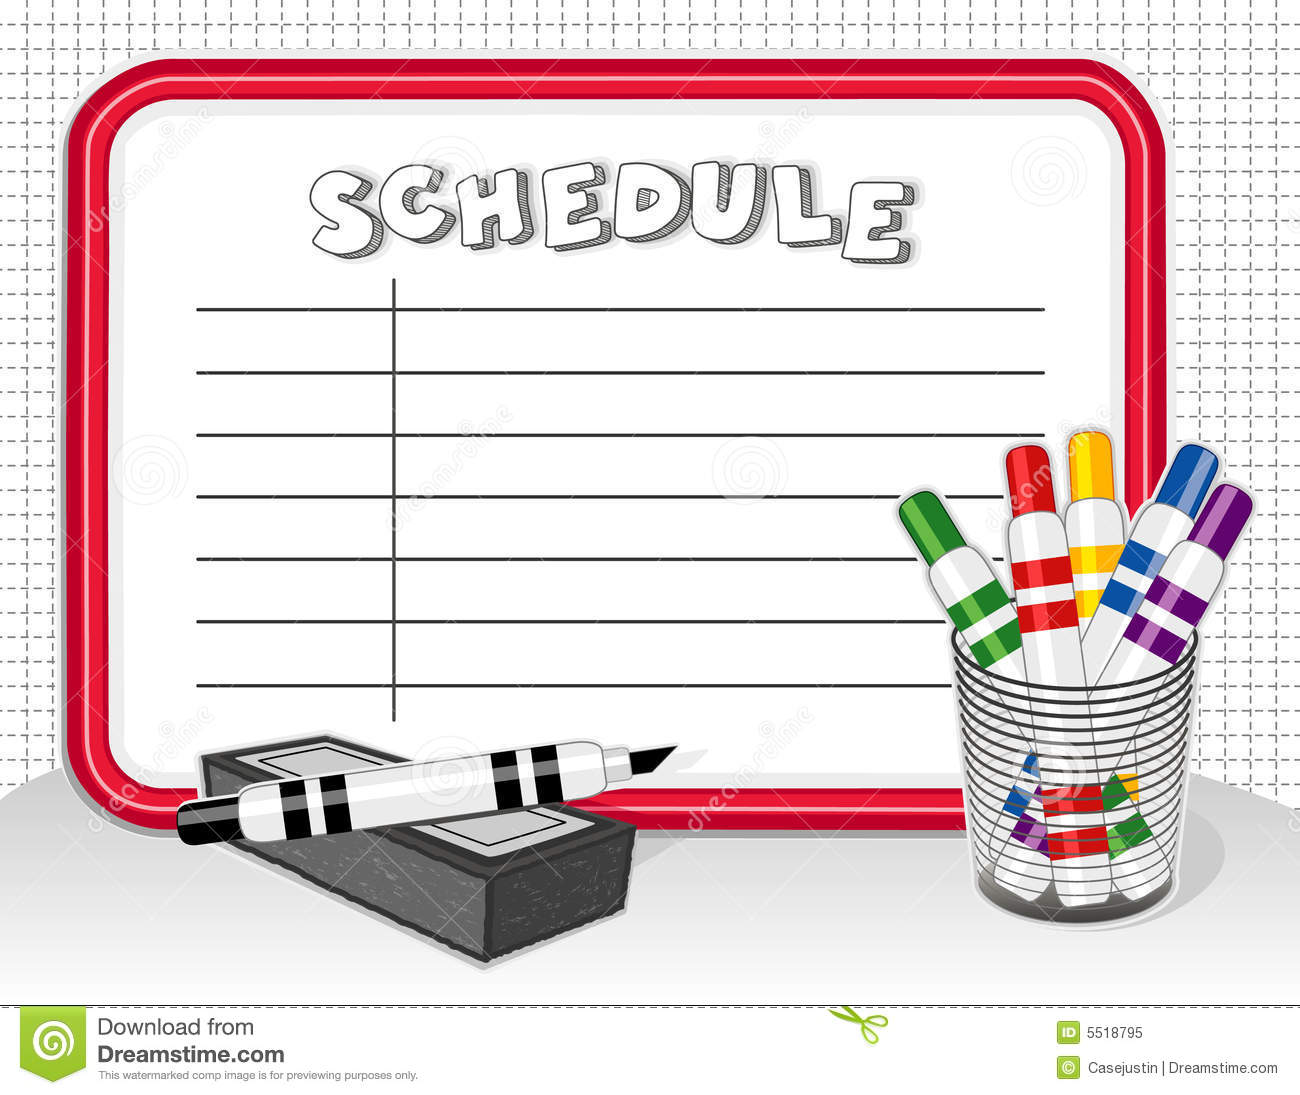 Schedule clipart 1 » Clipart Station.